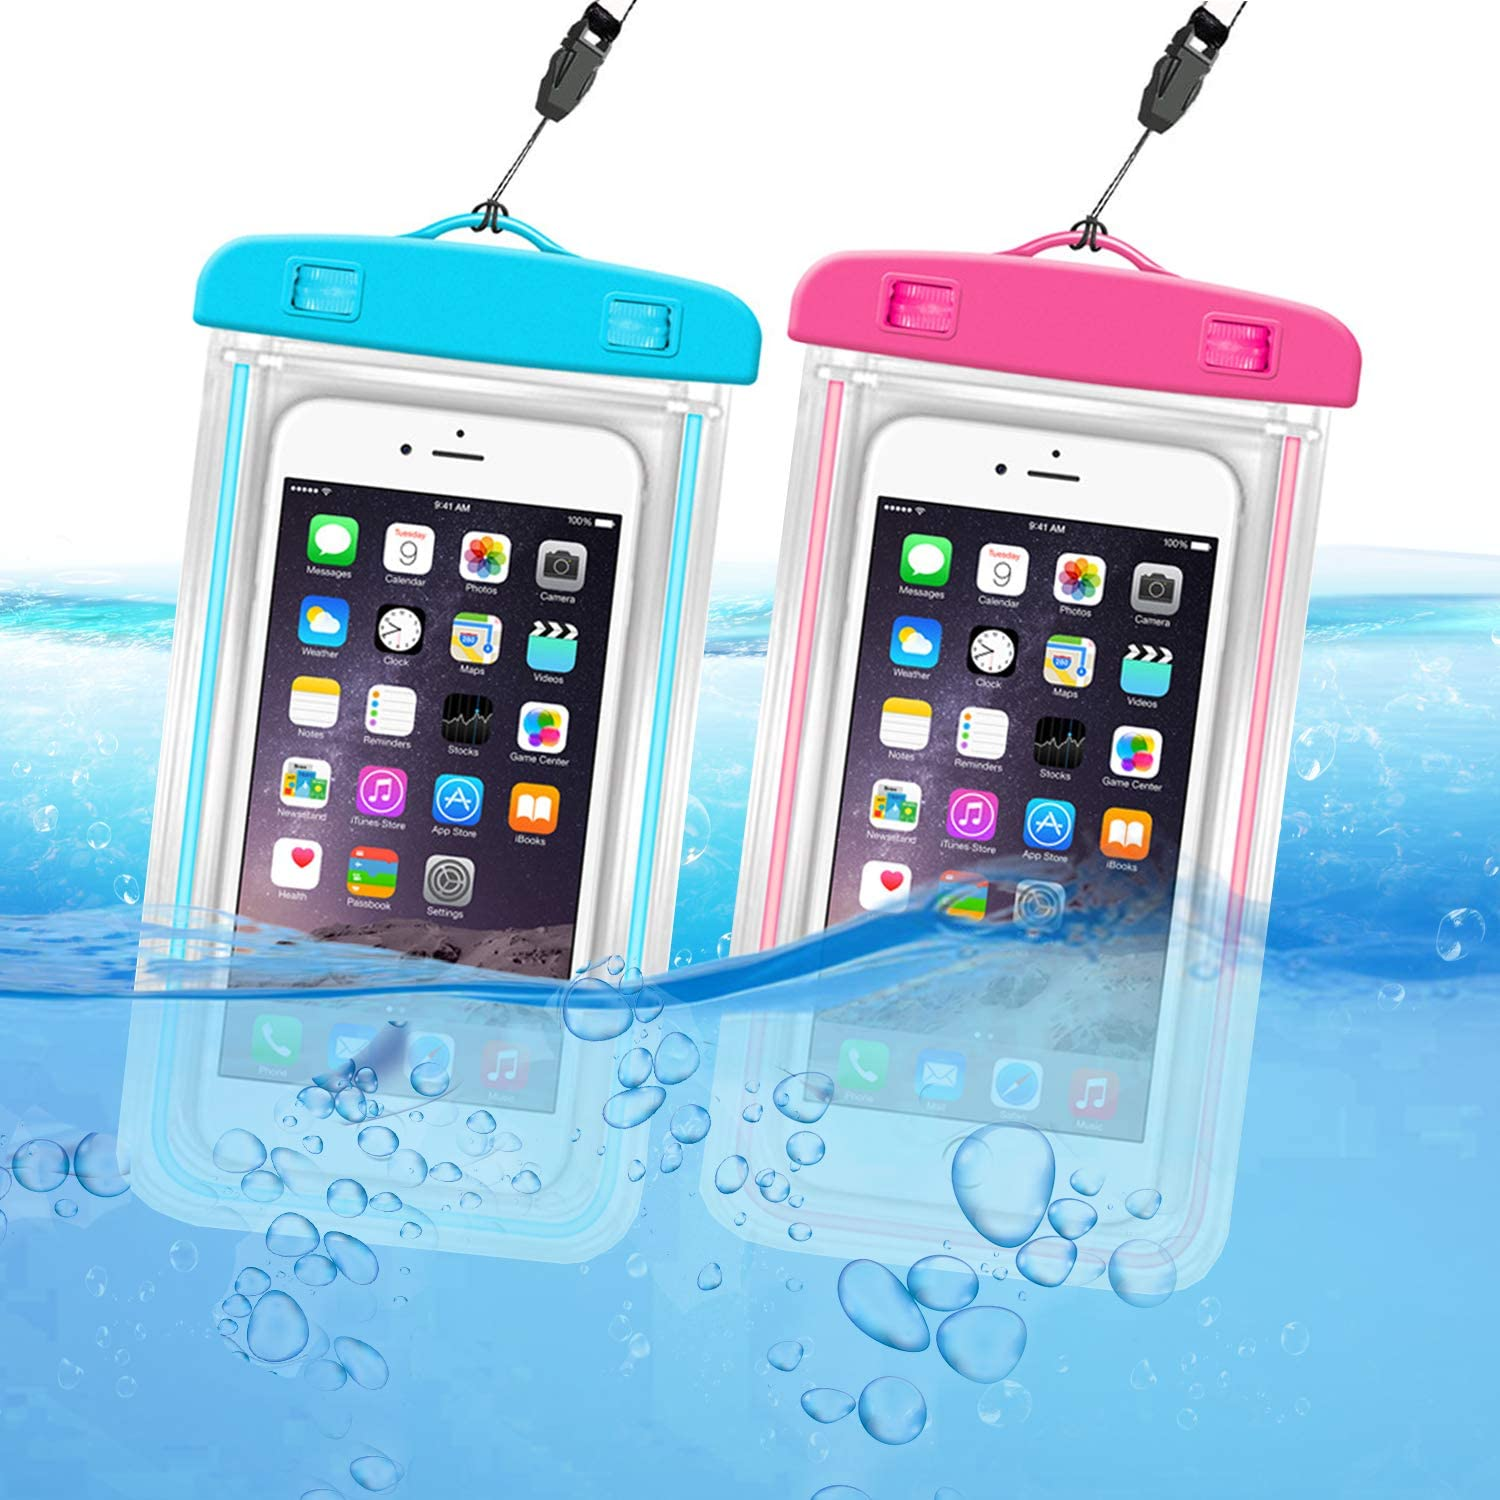 ORIbox Universal Waterproof Pouch Phone Dry Bag with Luminous Ornament Case for iPhone 12 11 Pro Max XS Max XR X 8 7 6S Plus SE 2020 12 mini Galaxy Pixel, Blue & Rose red(2 Packs)